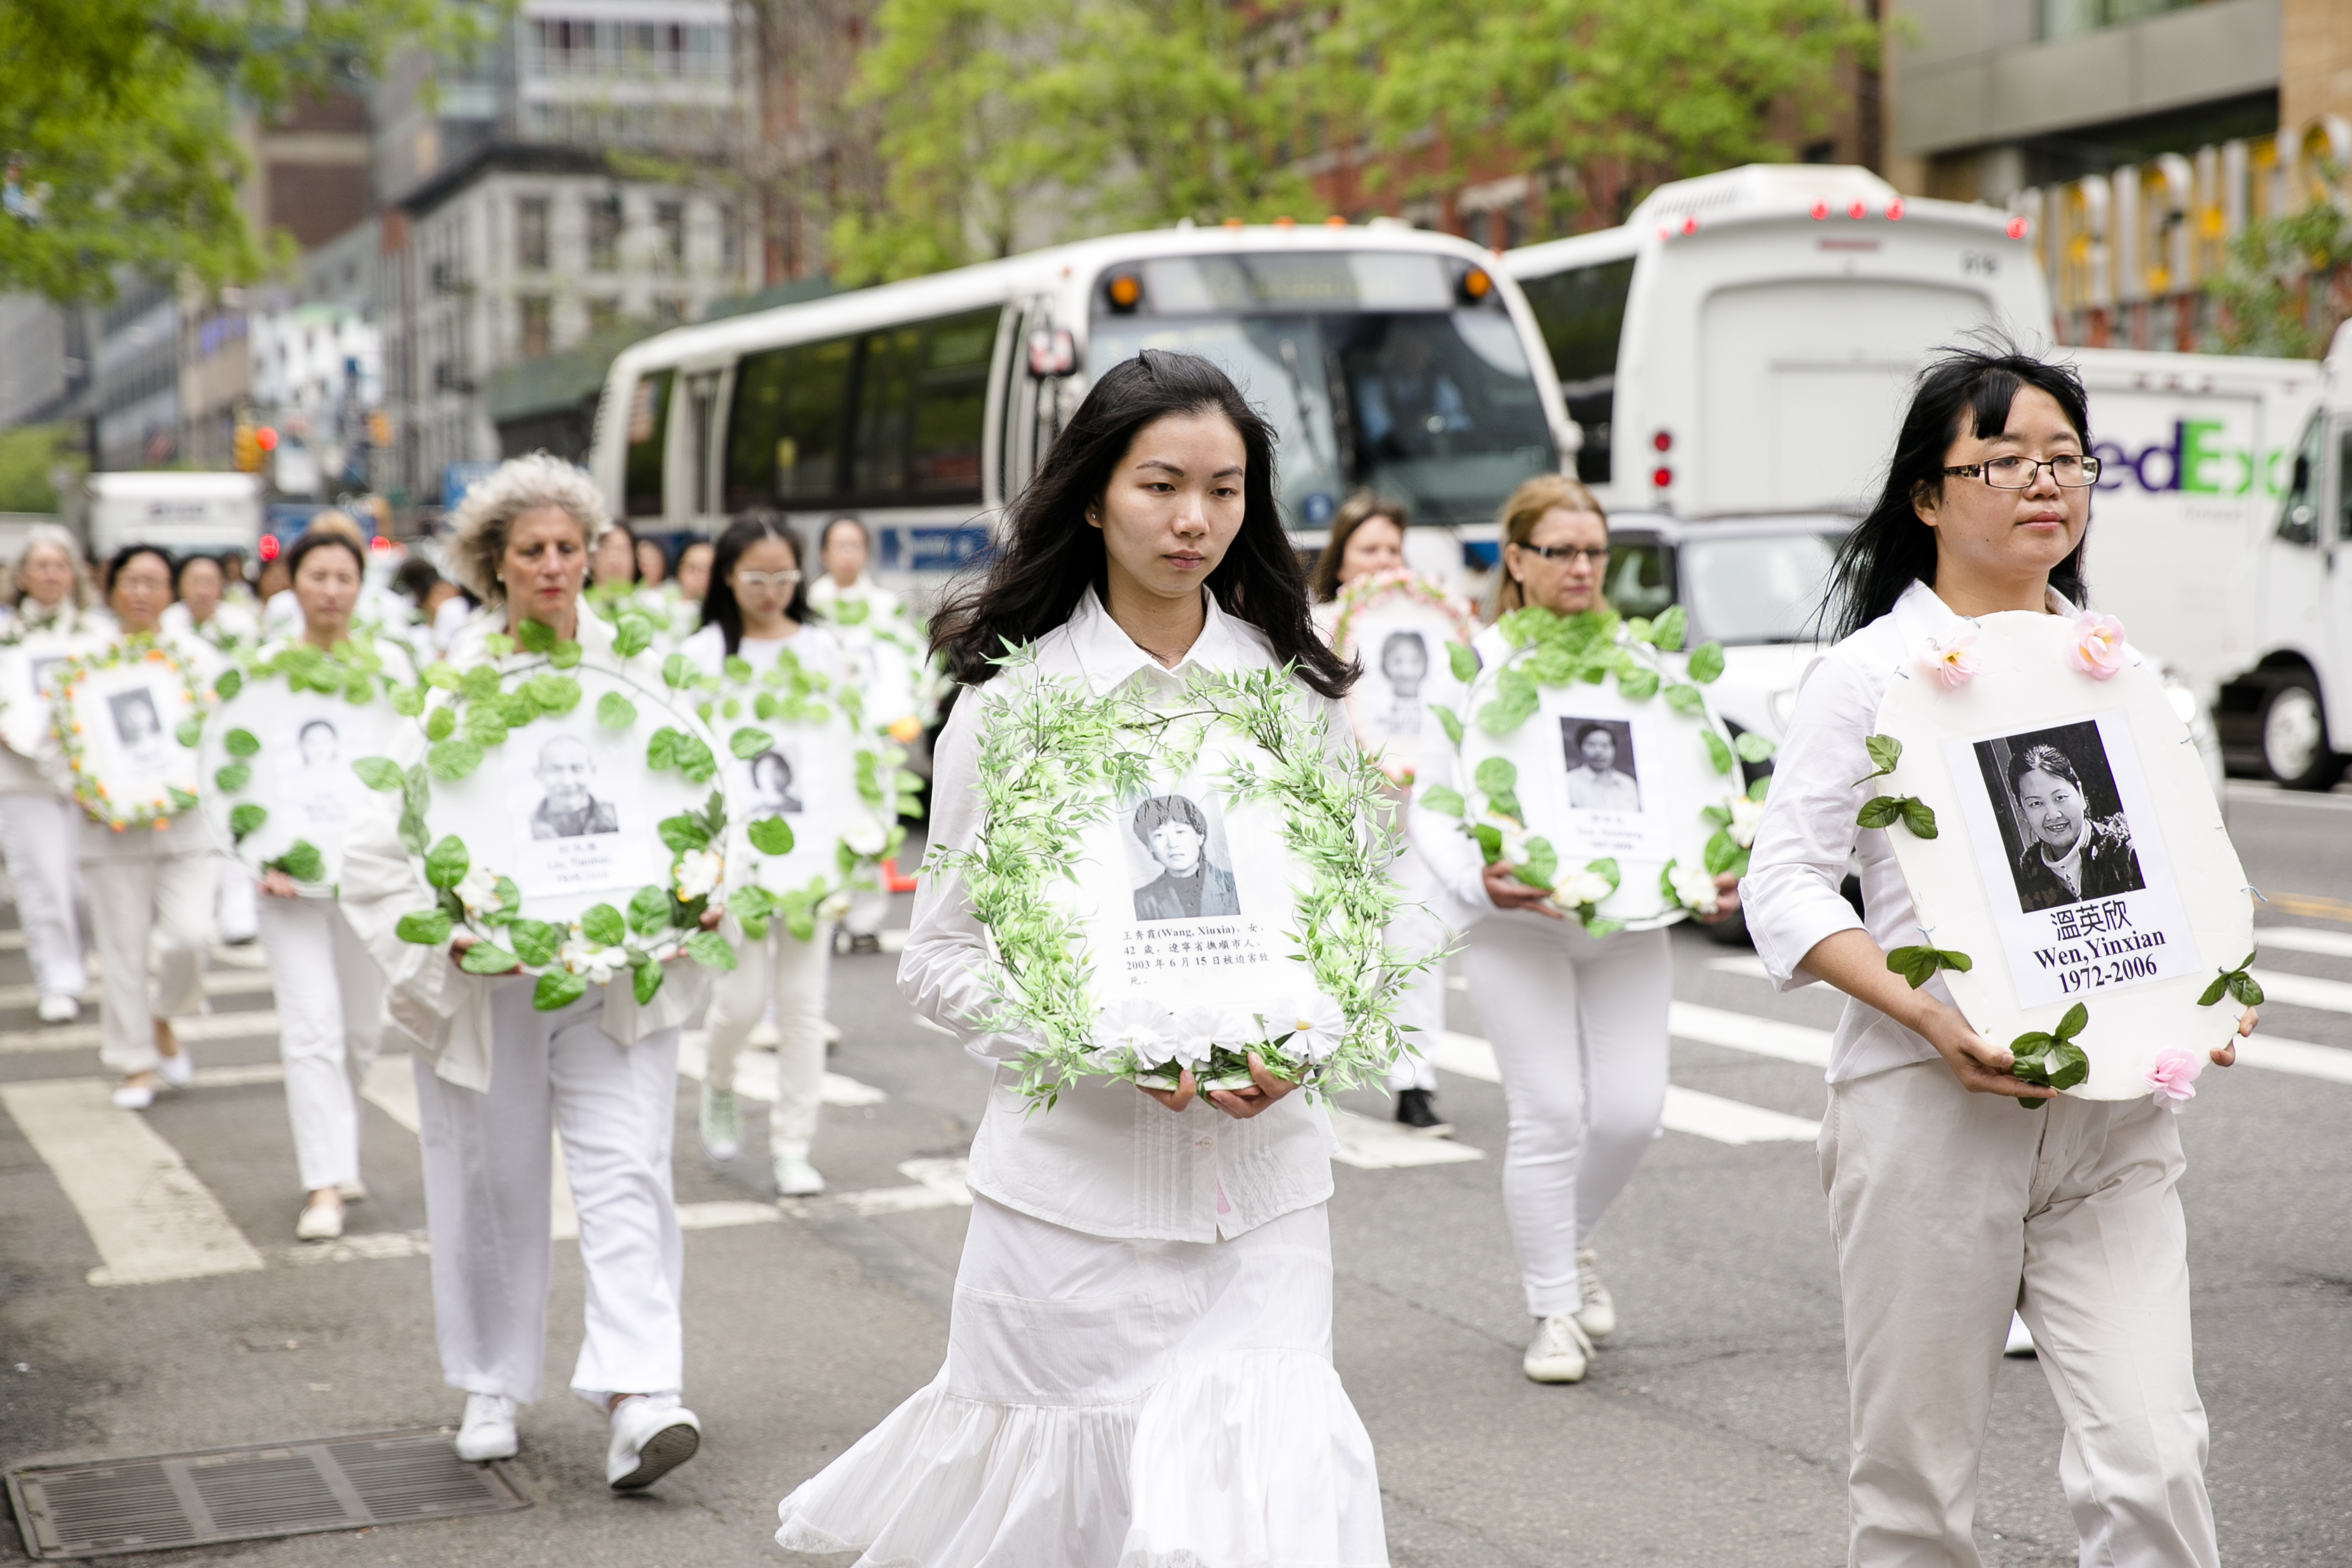 Falun Gong practitioners hold portraits of those killed in the persecution in China during the World Falun Dafa Day parade along 42nd Street in New York, on May 13, 2016. (Samira Bouaou/Epoch Times)